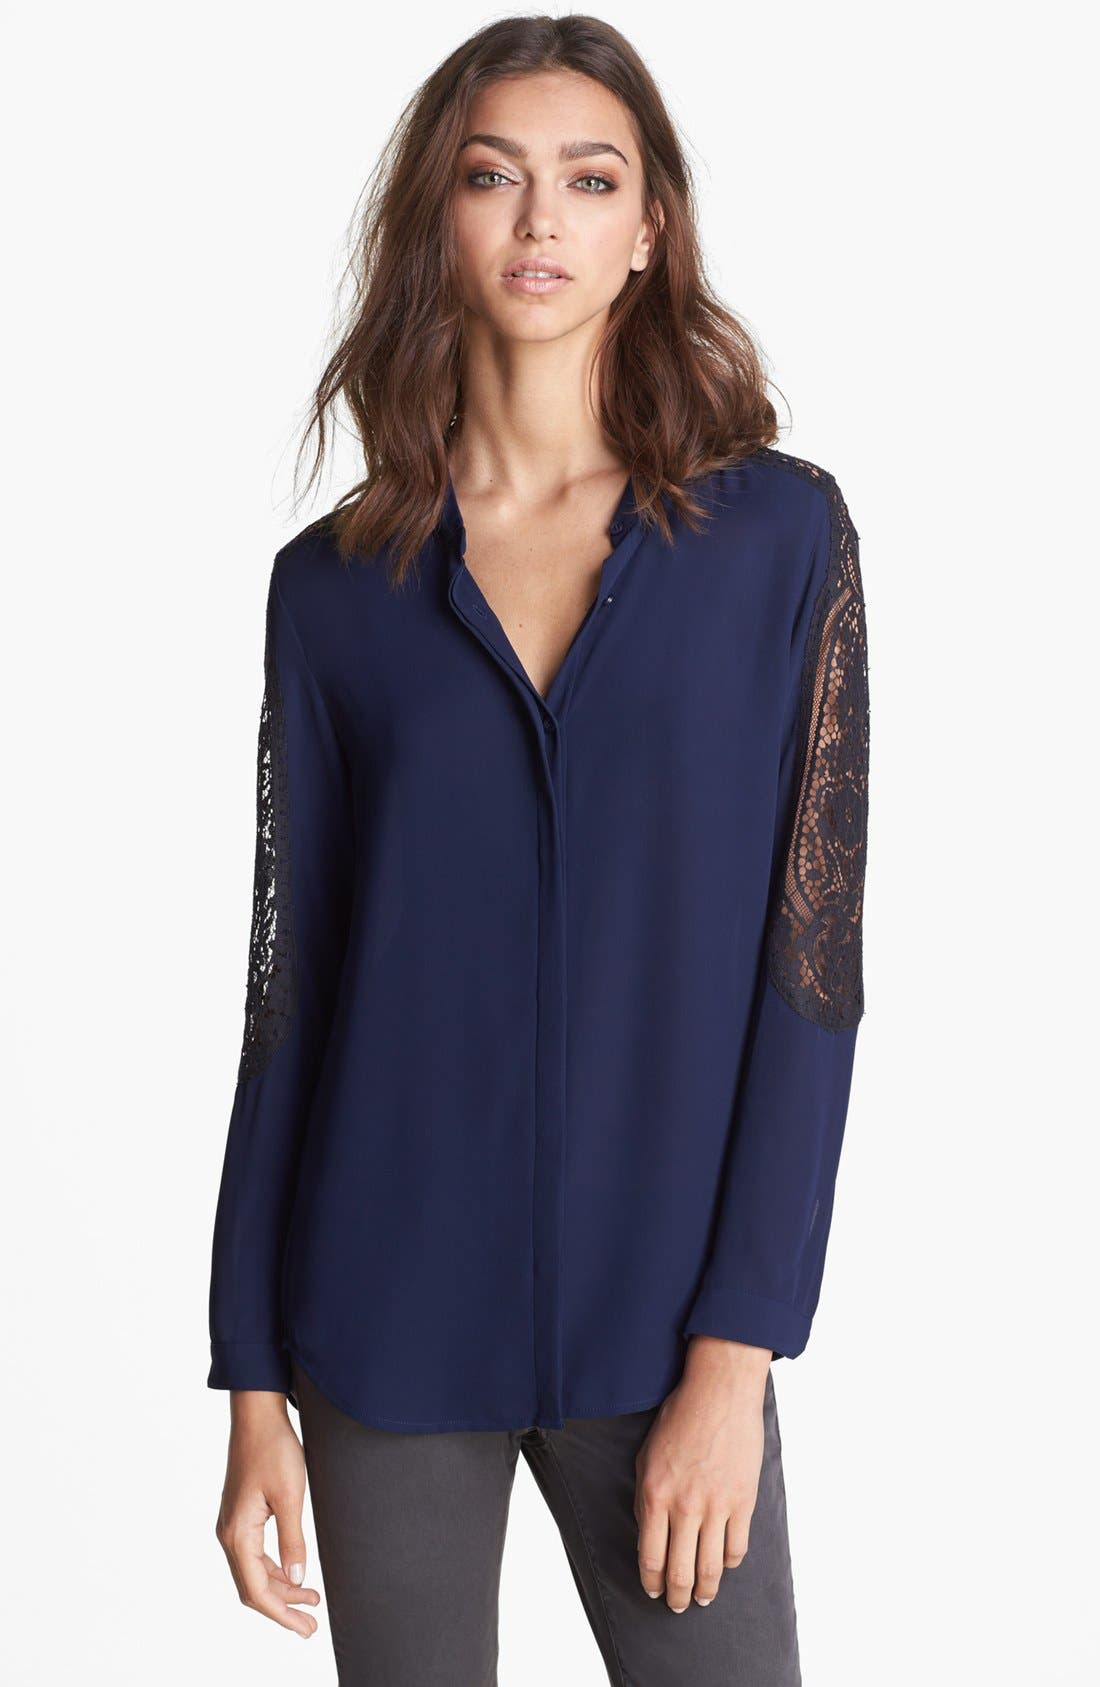 Alternate Image 1 Selected - The Kooples Lace Sleeve Blouse